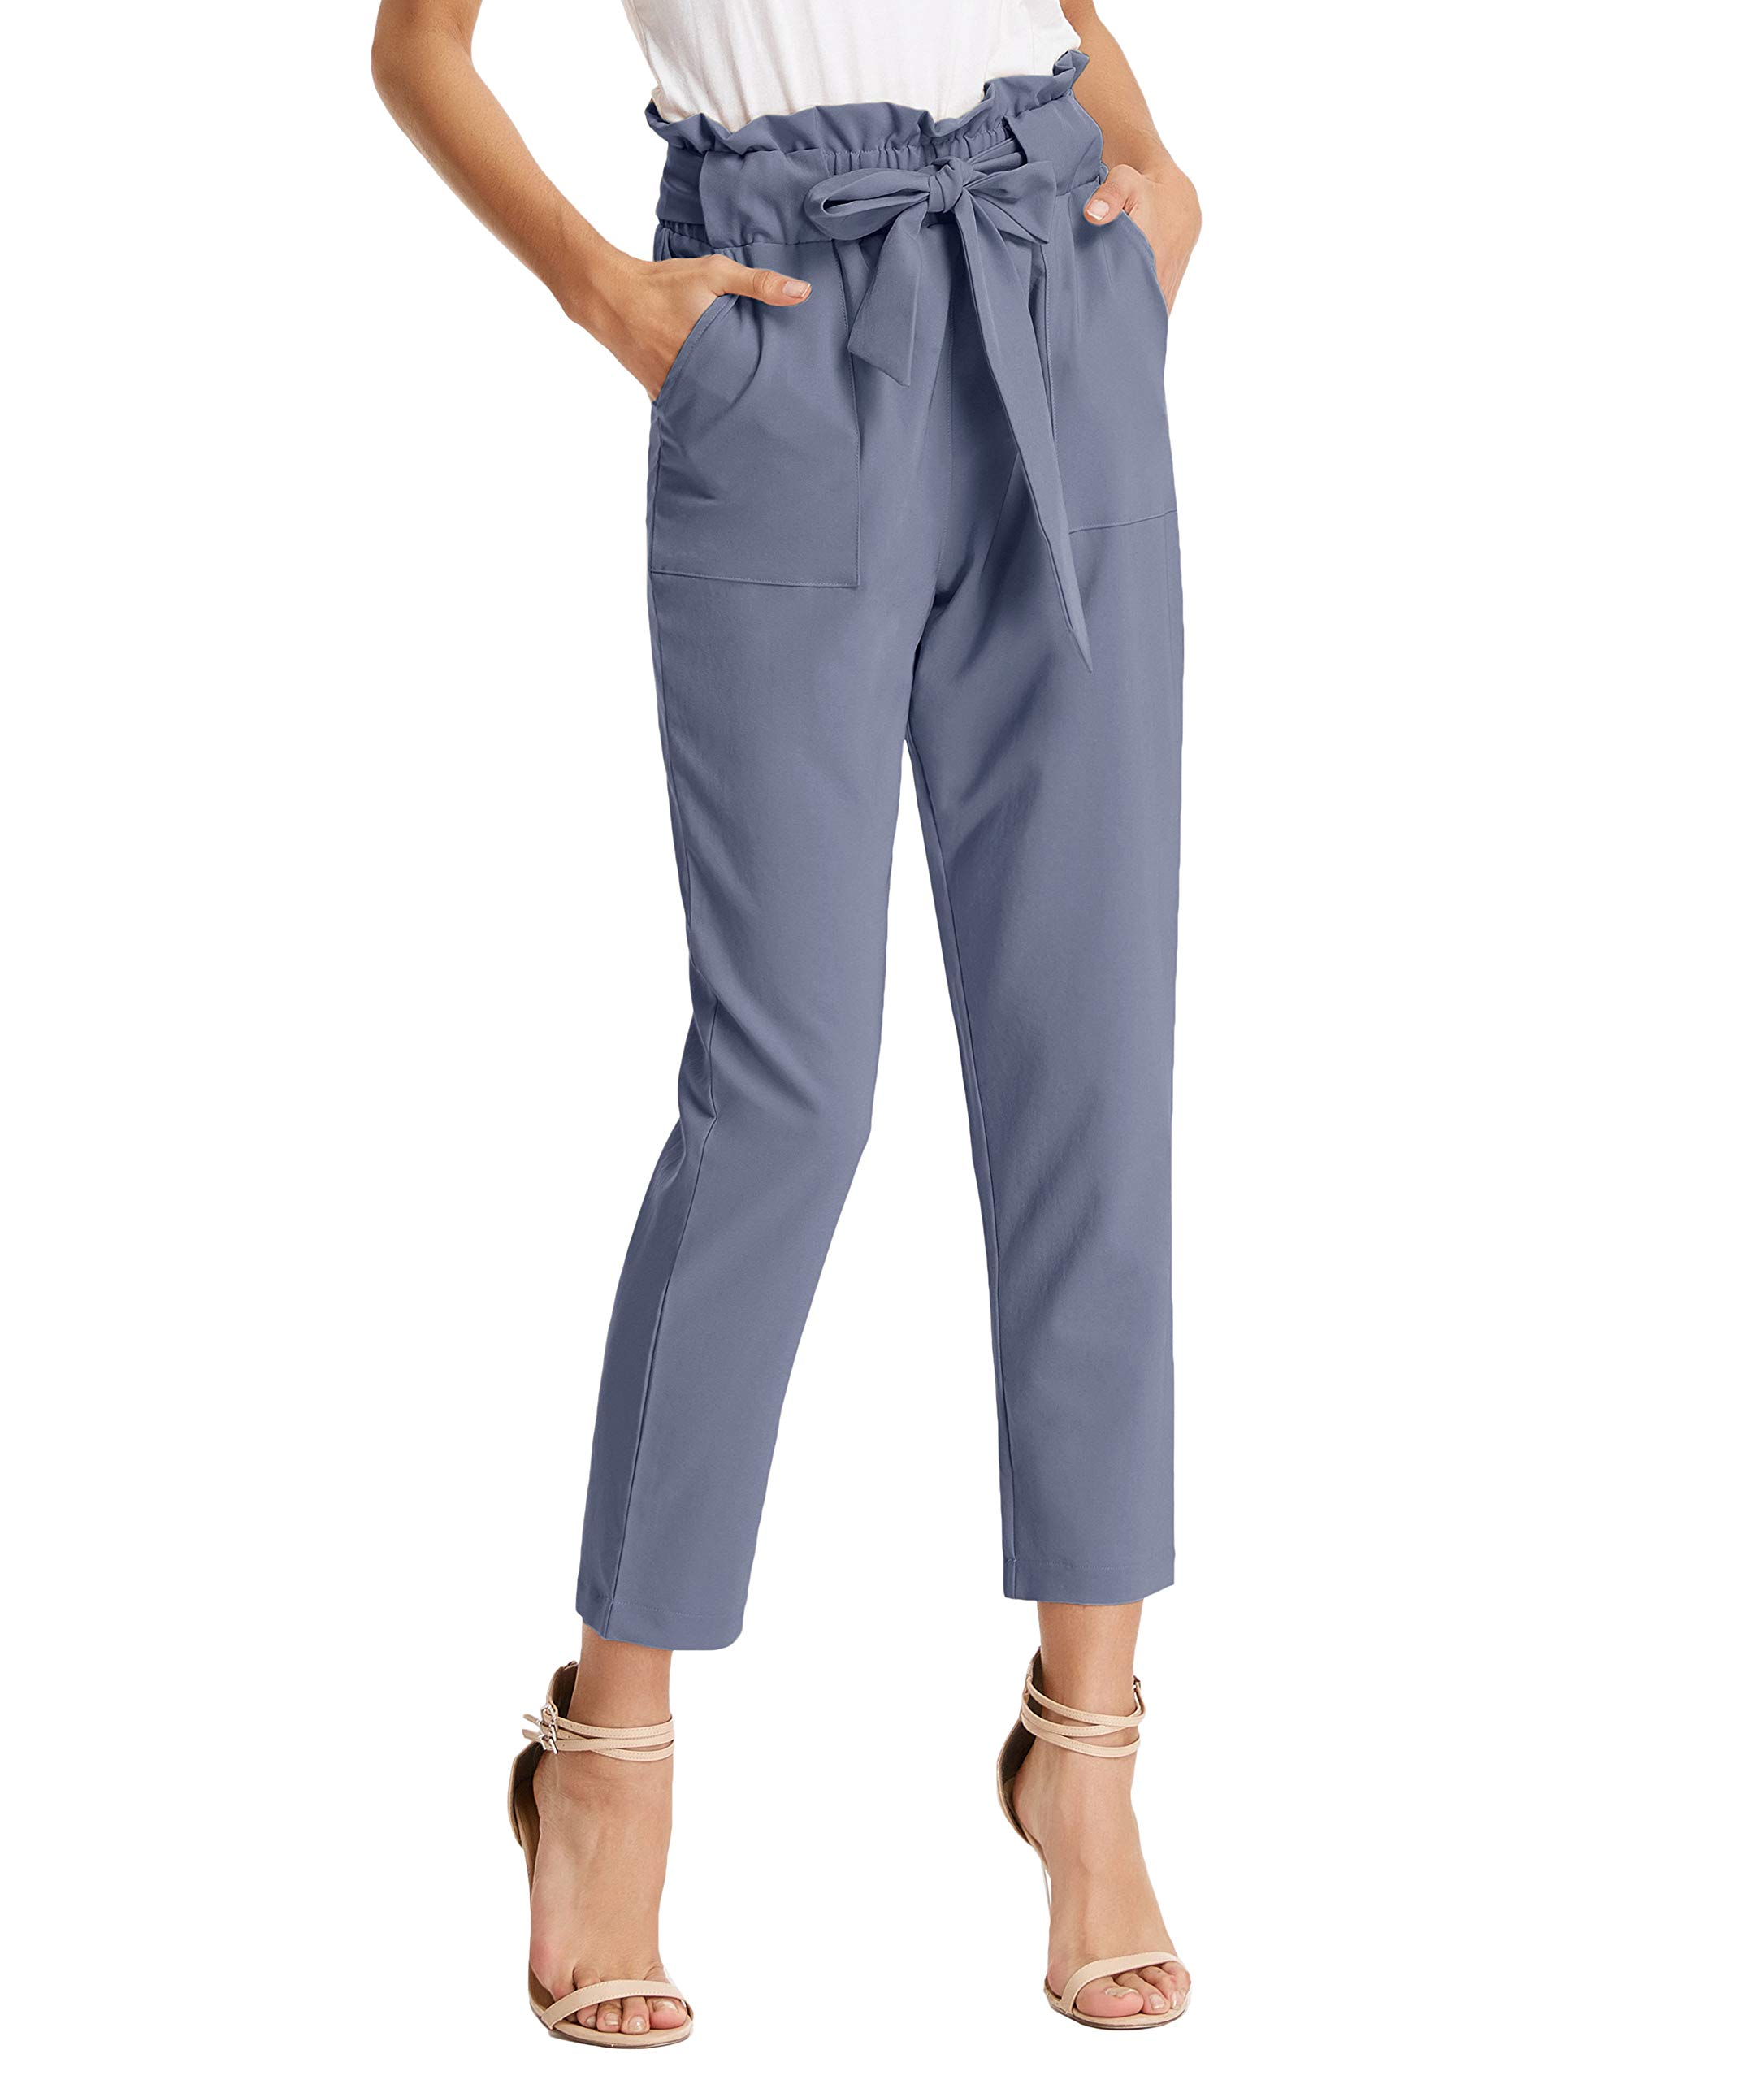 GRACE KARIN Women's Slim Straight Leg Stretch Casual Pants with Pockets M Gray Blue